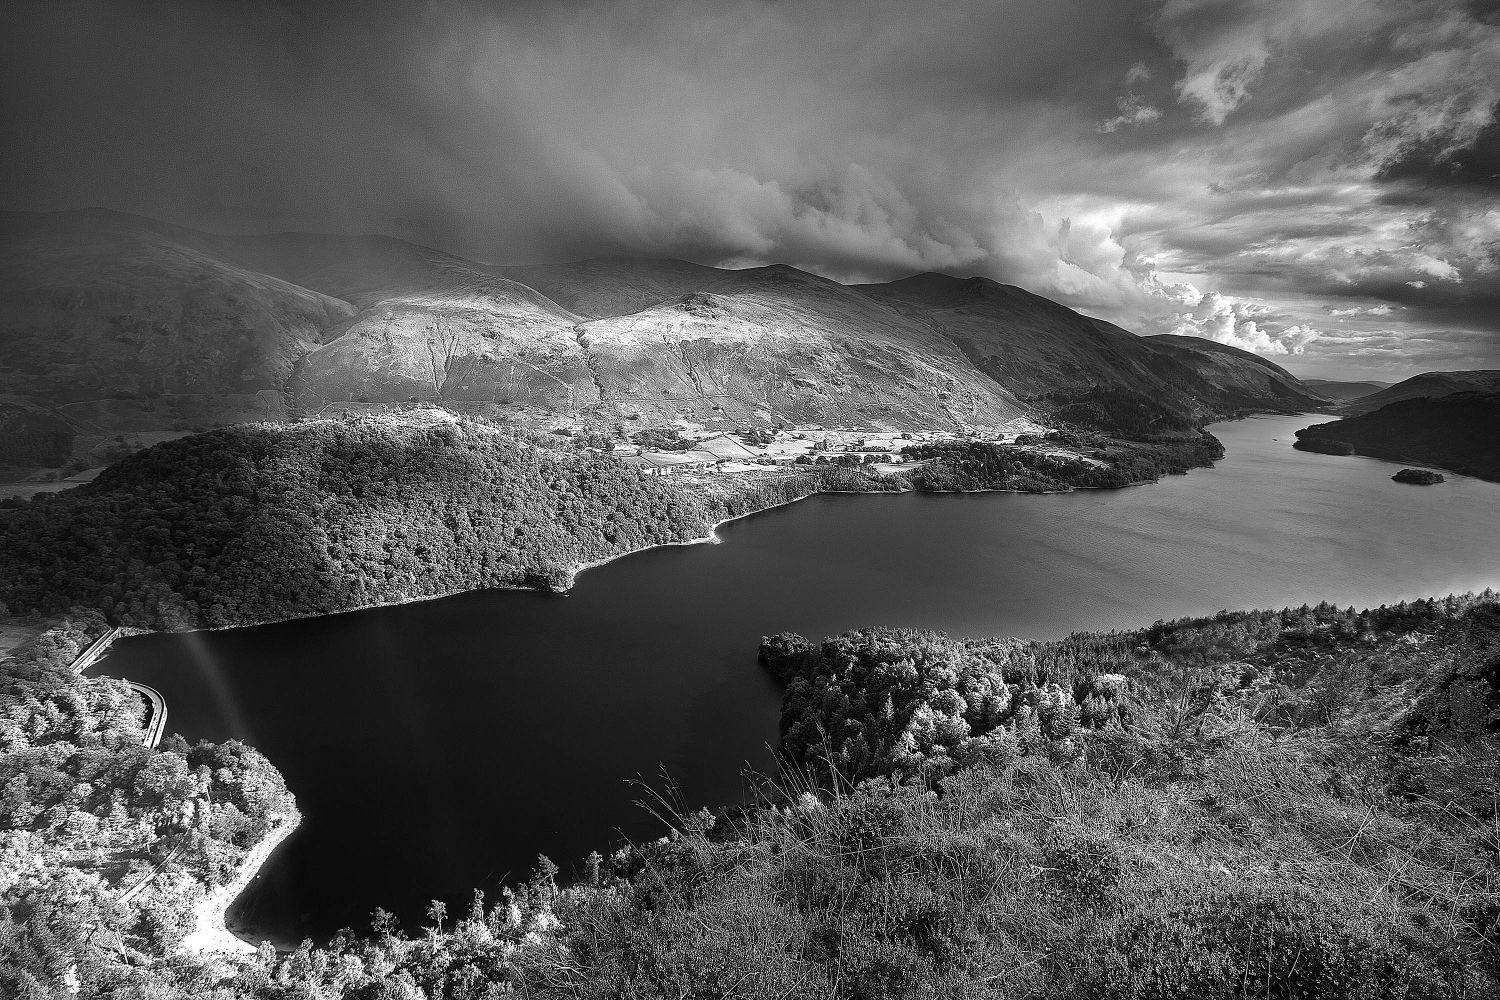 Storm clouds gather over Thirlmere in Black and White by Martin Lawrence